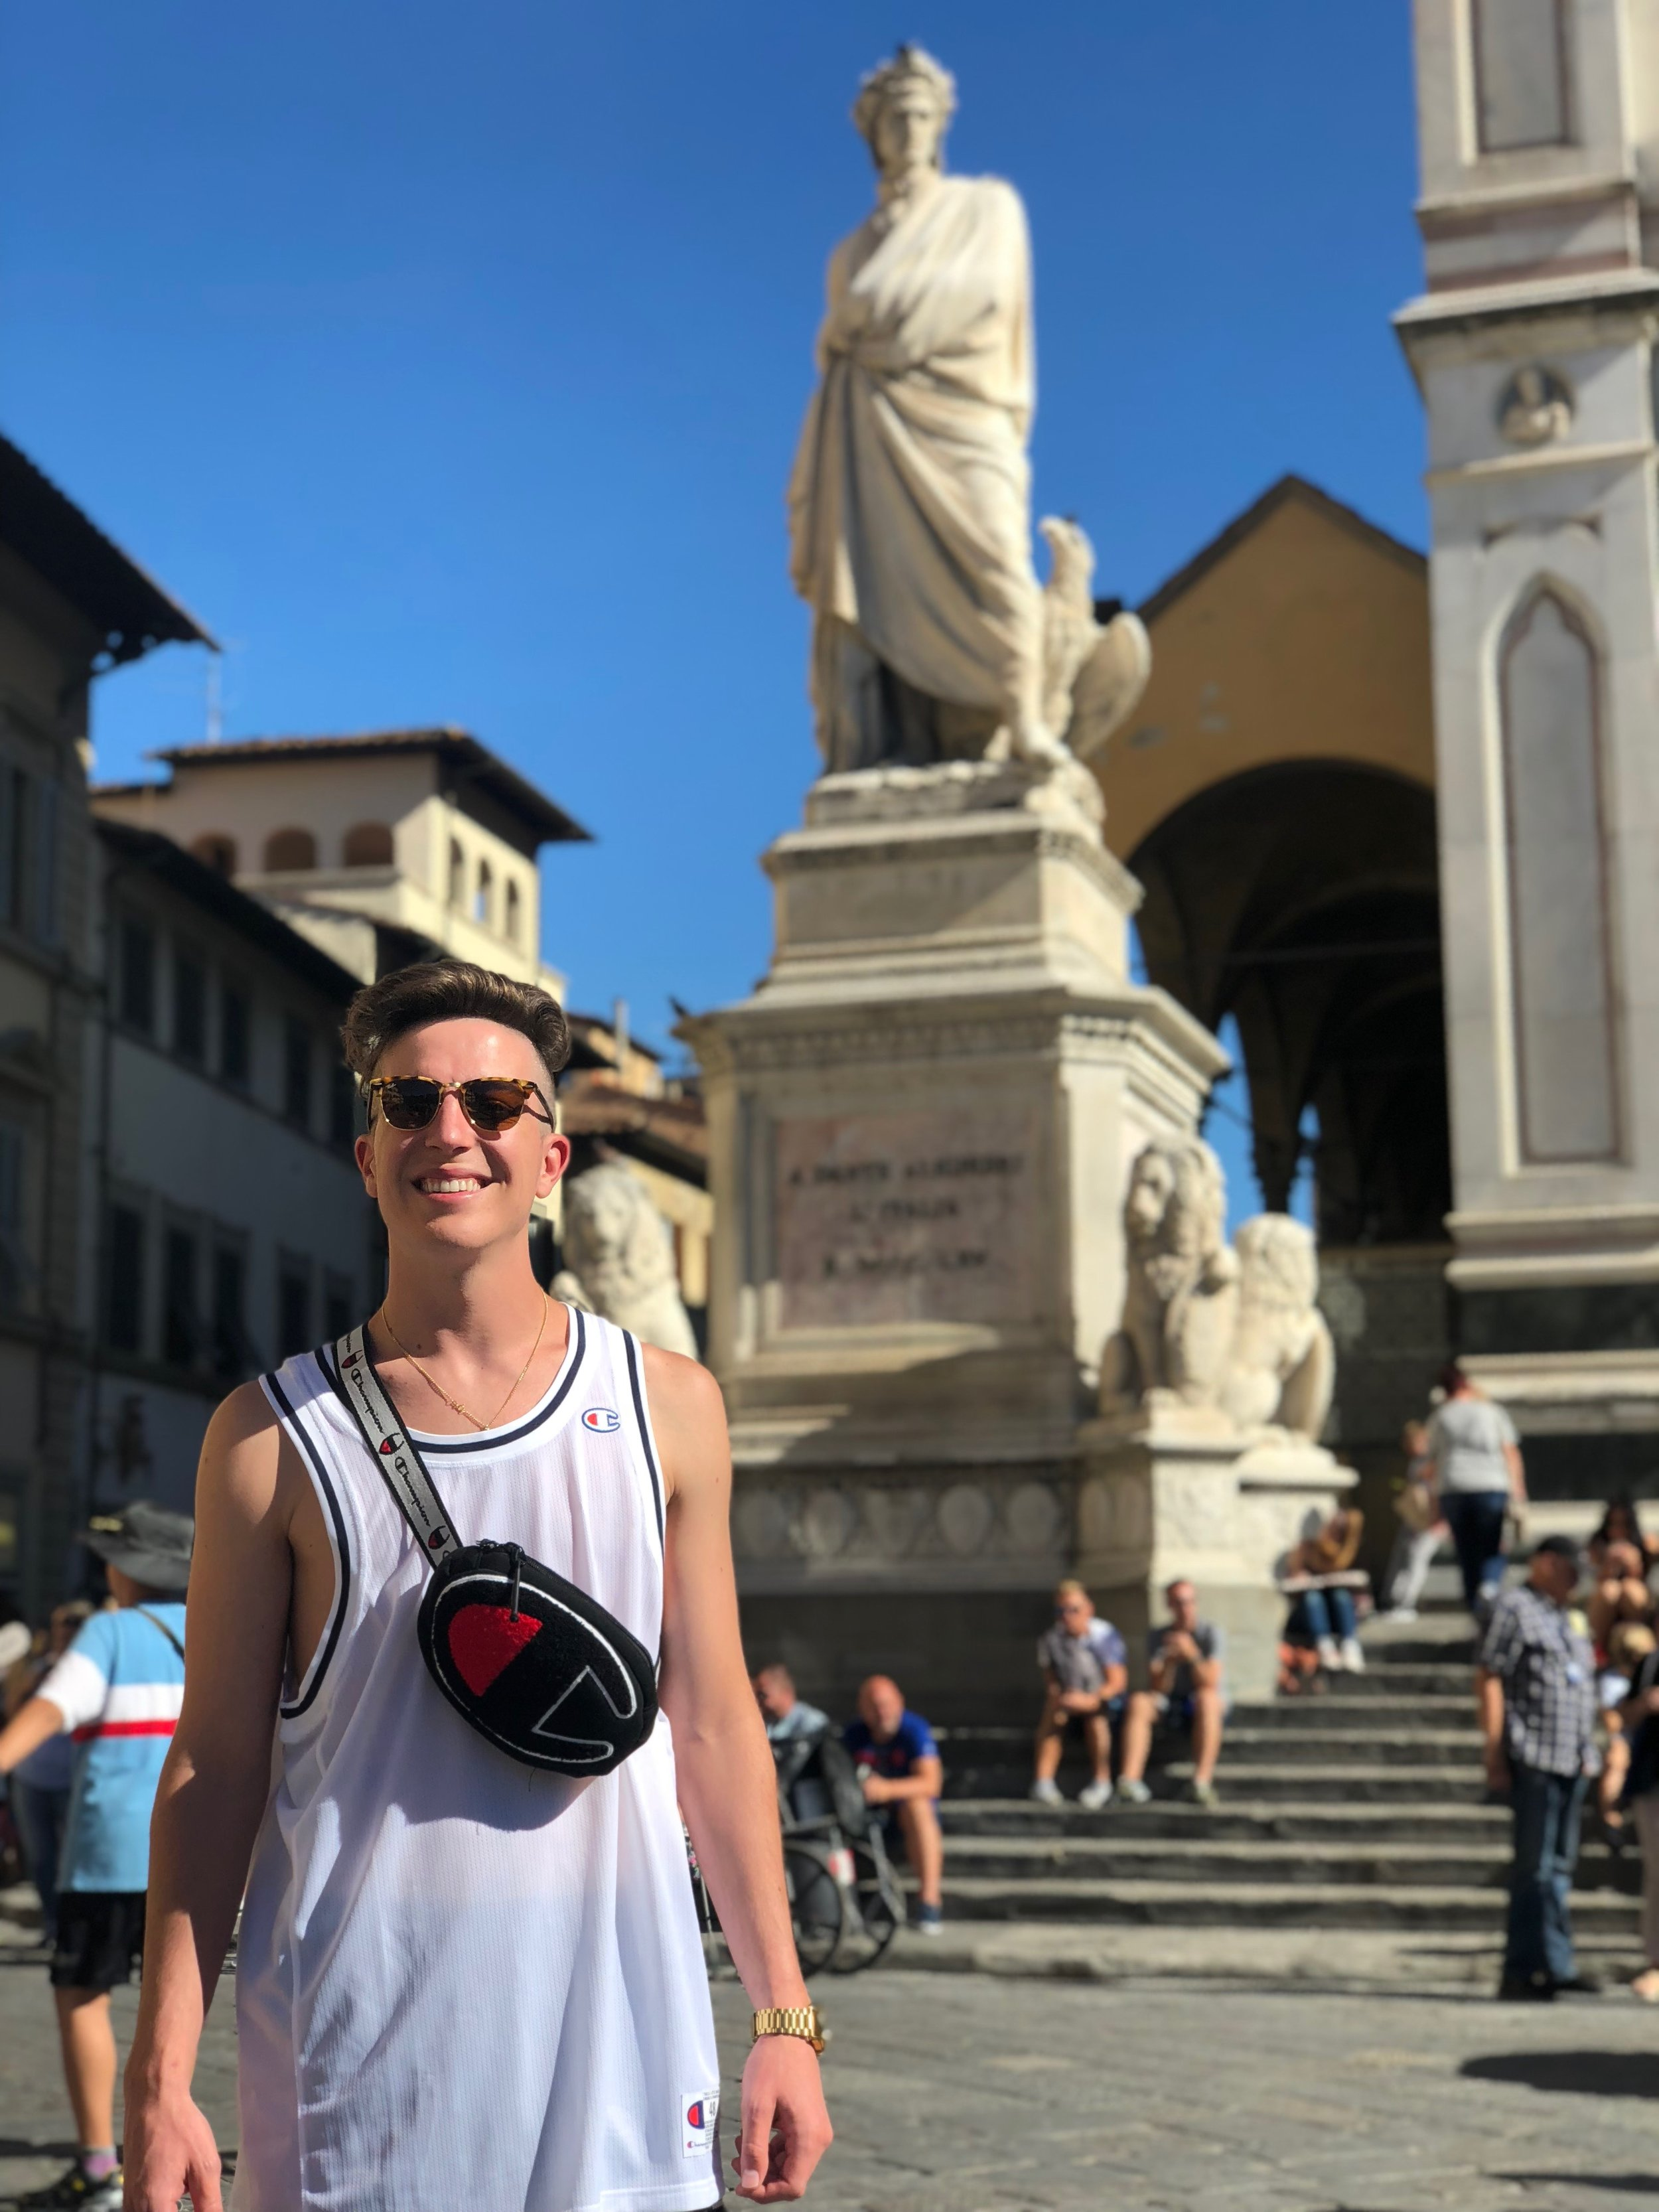 Louie with the statue of Dante outside of the Santa Croce Church